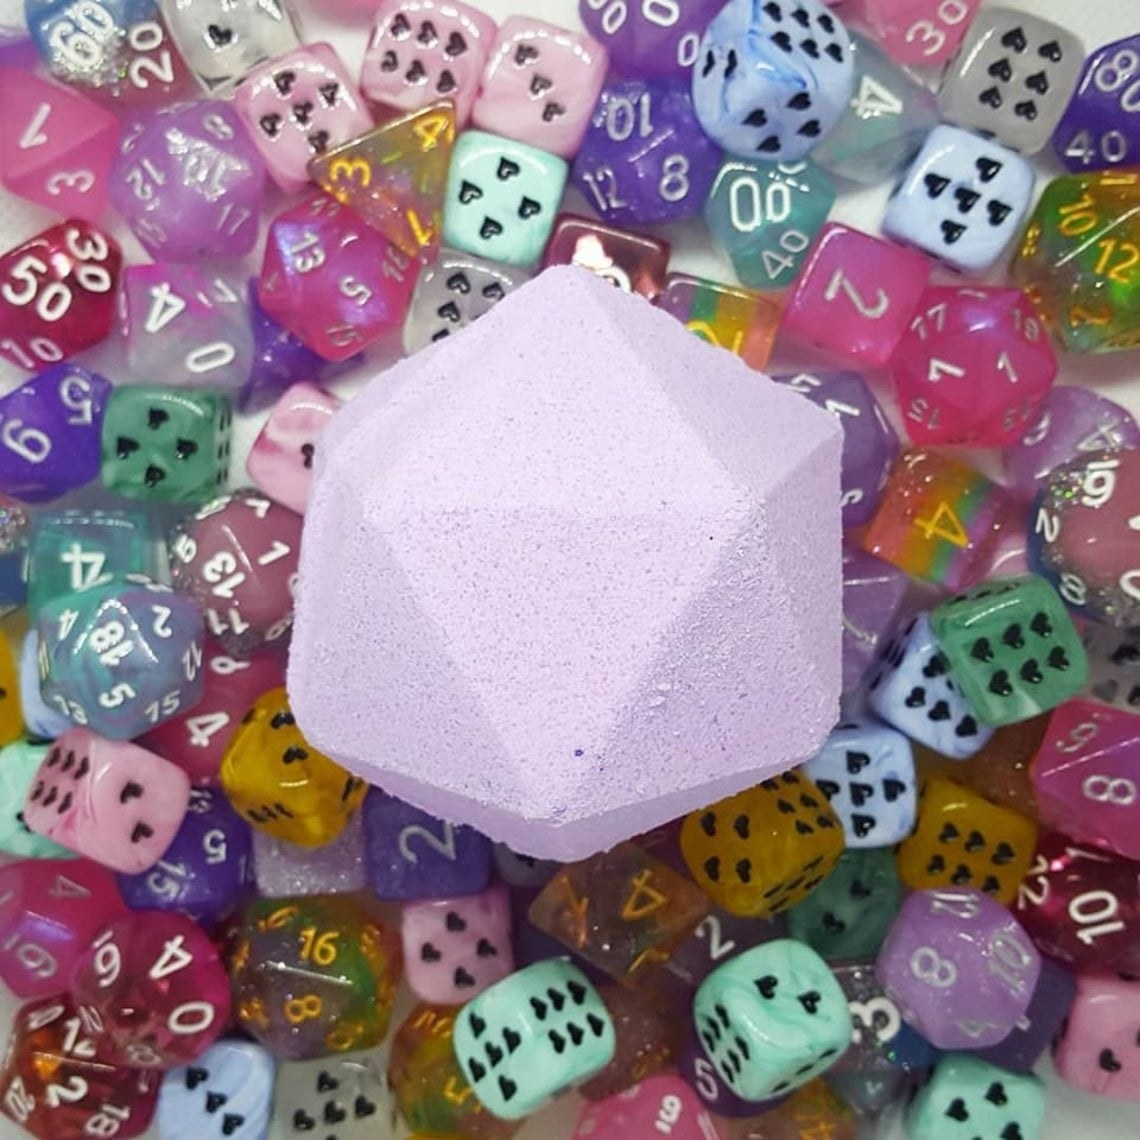 20-sided die bath bomb on pile of dice with various sides